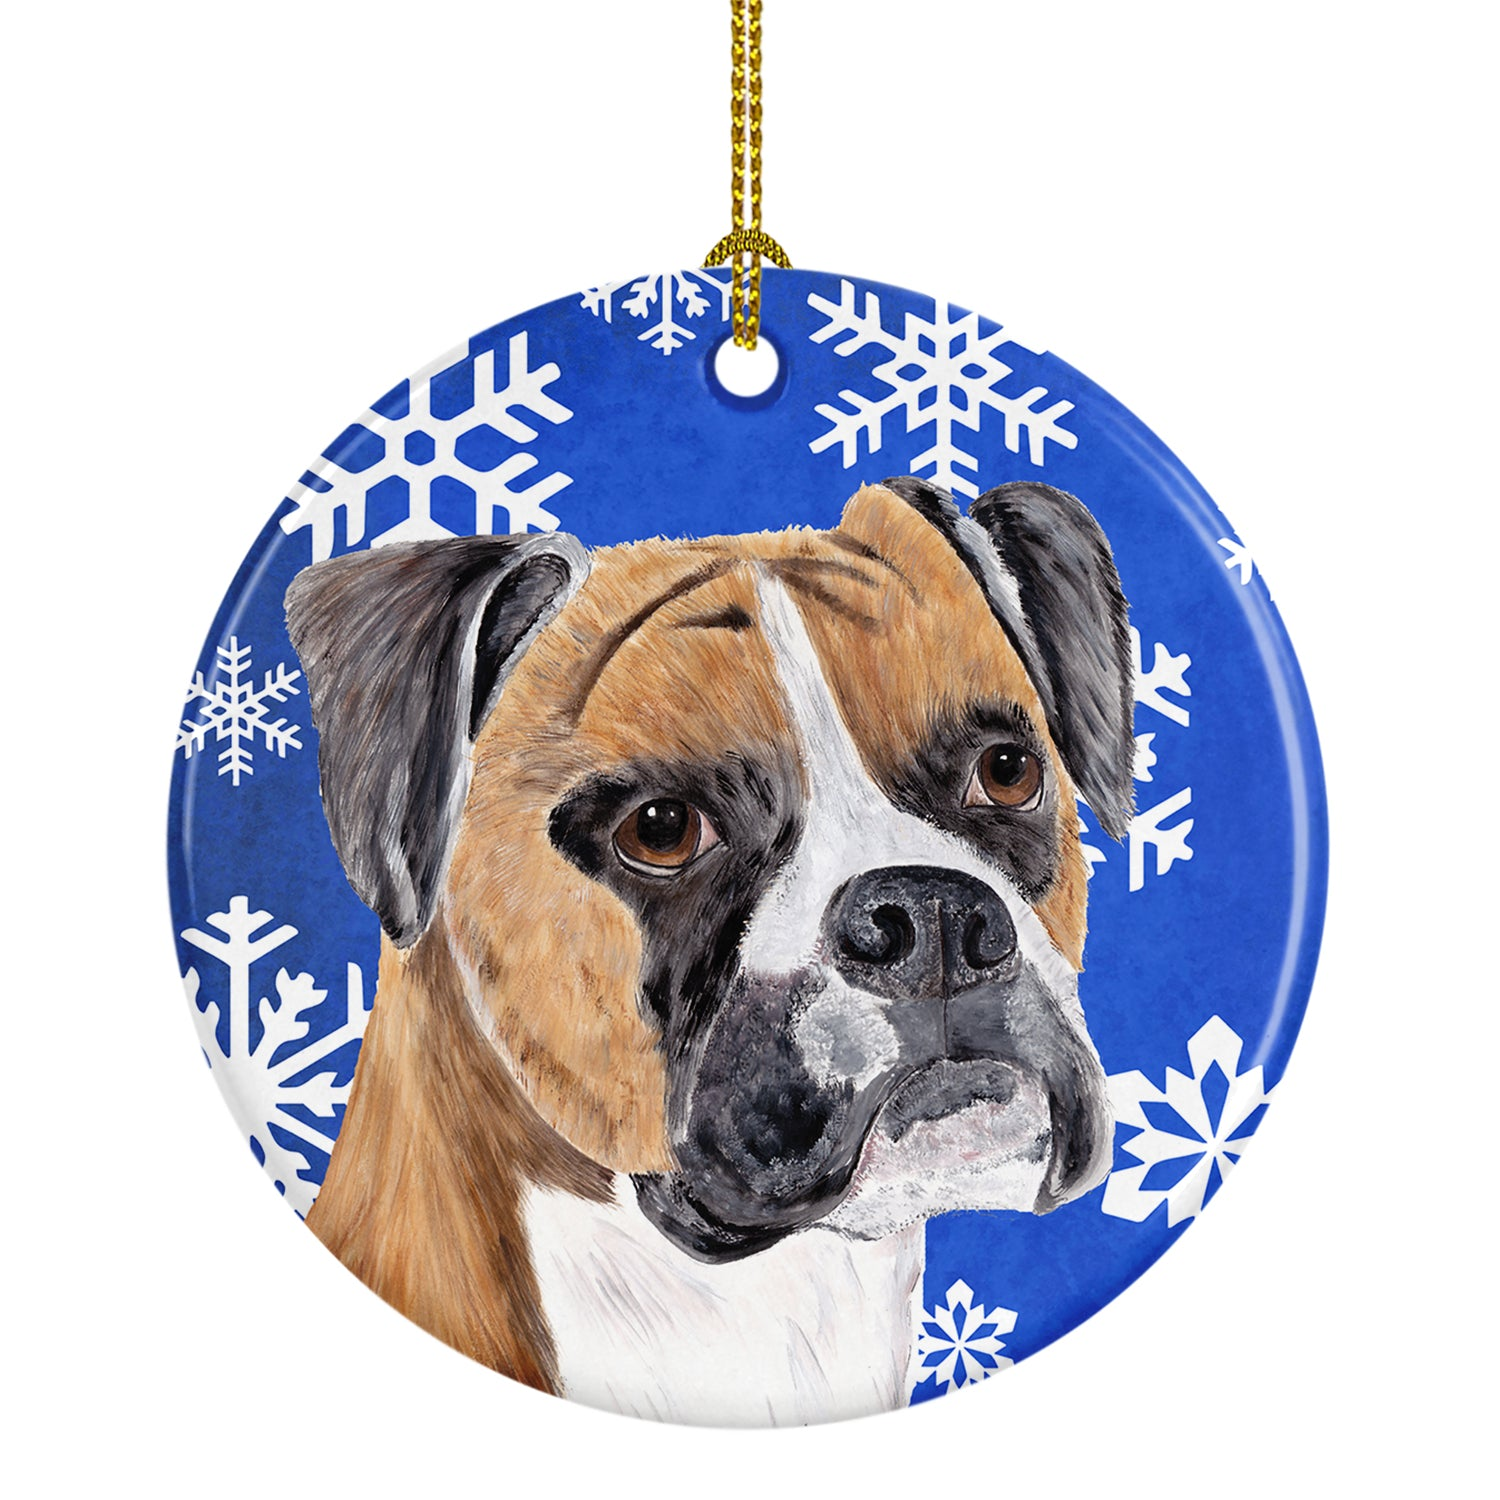 Boxer Winter Snowflakes Holiday Ceramic Ornament SC9390 by Caroline's Treasures